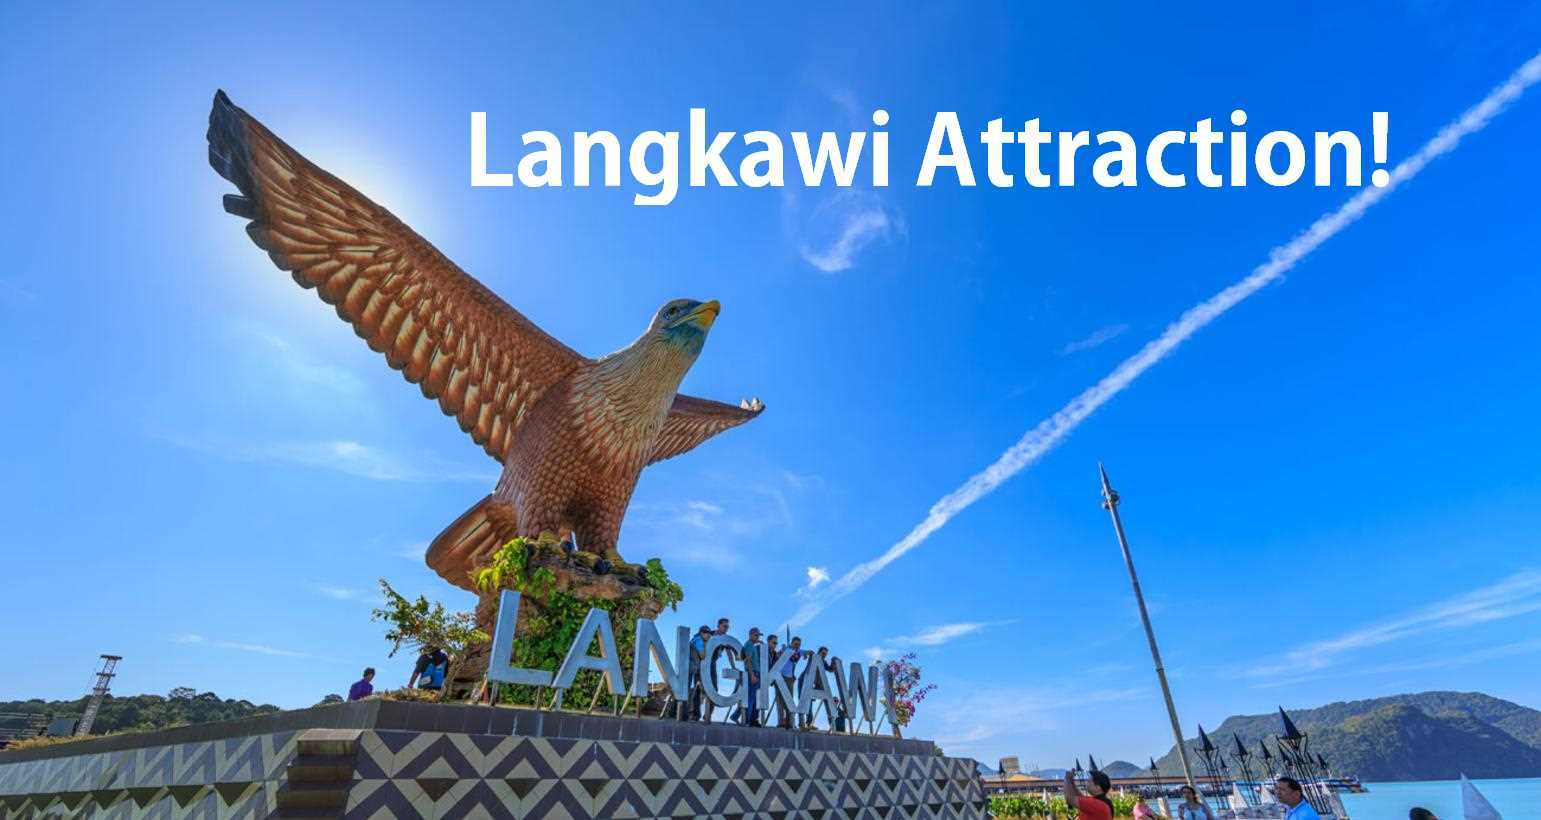 Top 10 Best Attraction @Langkawi Featured Image